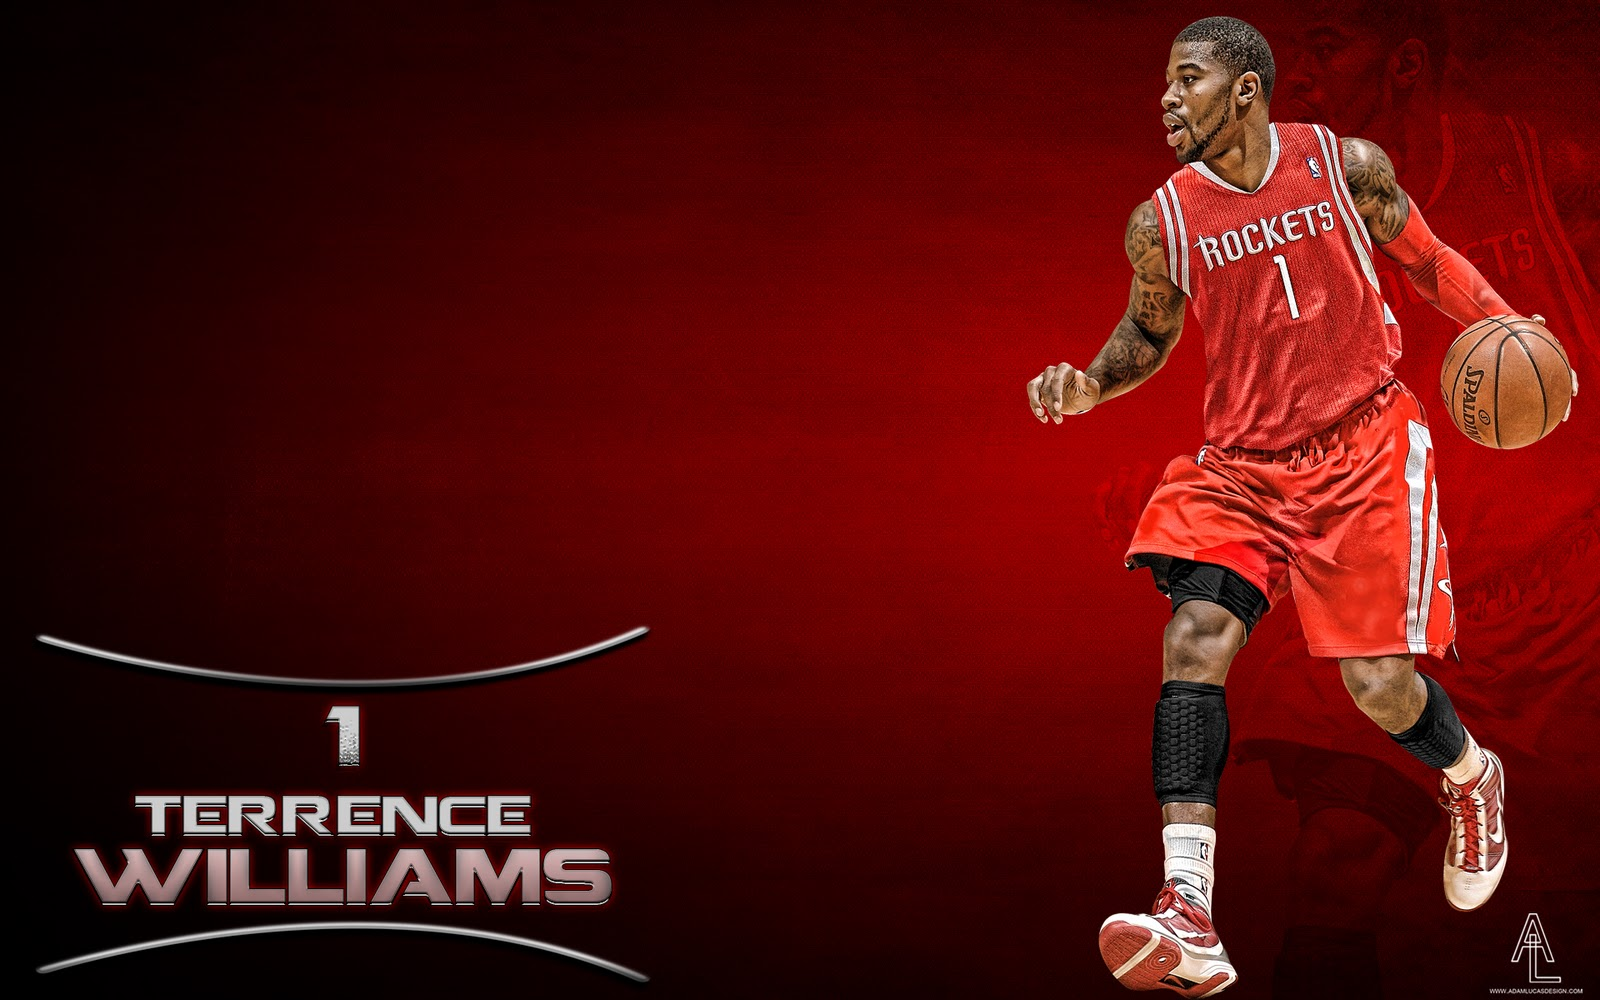 terrence williams basketball player latest hd wallpapers